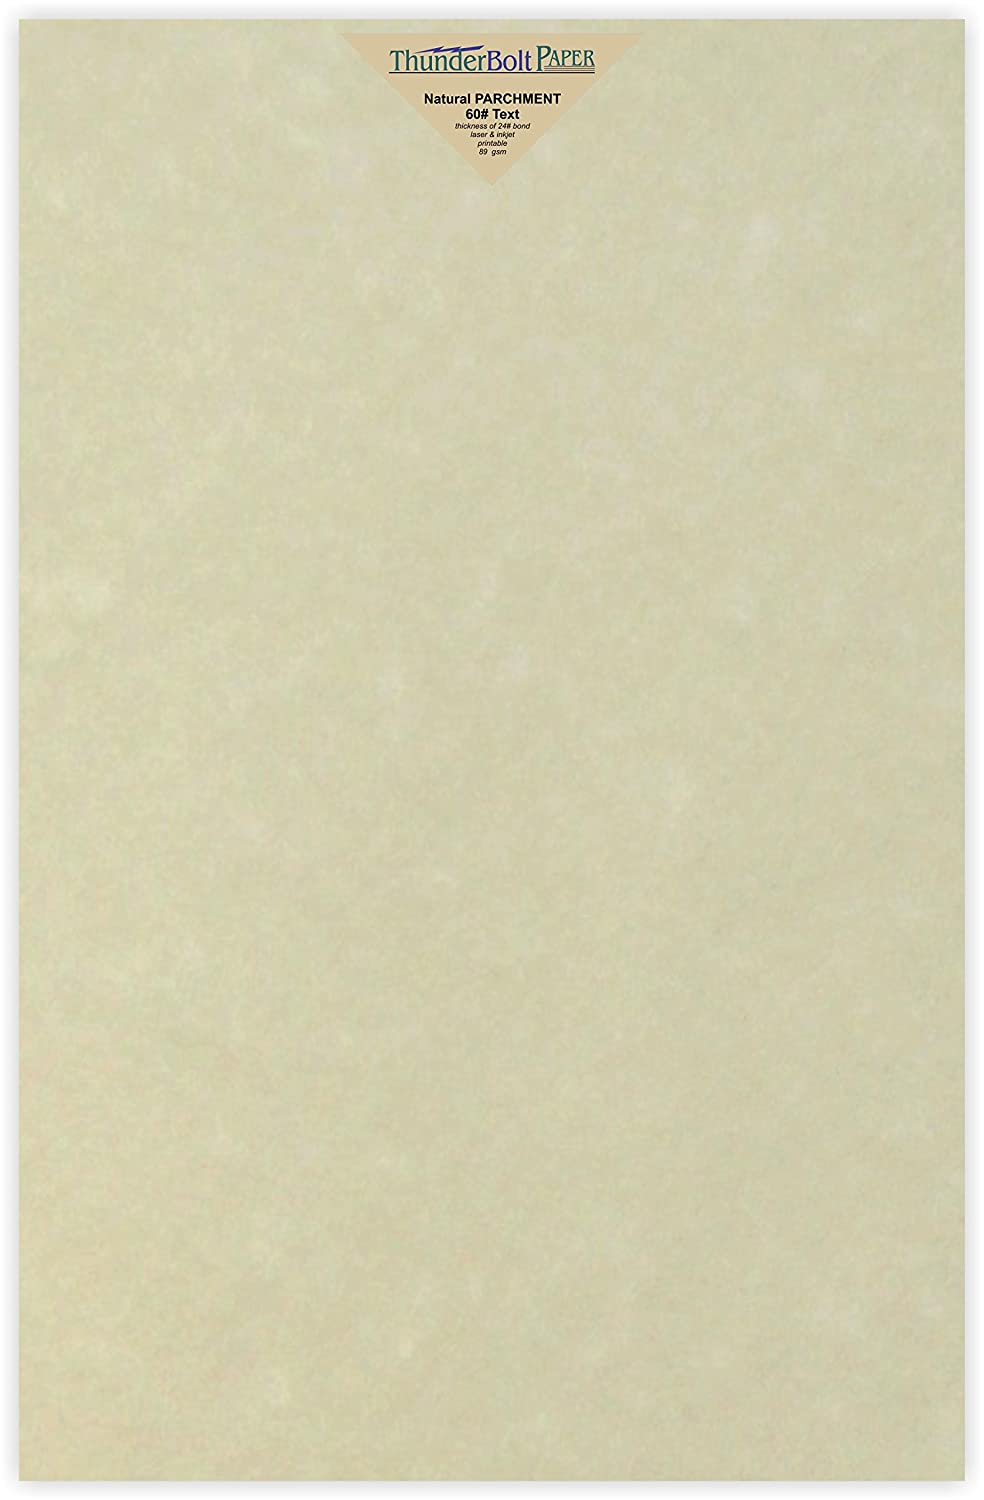 100 Natural Parchment 60# Text (=24# Bond) Paper Sheets - 11 X 17 (11X17 Inches) Tabloid|Ledger|Booklet Size - 60 Pound is Not Card Weight - Vintage Colored Old Parchment Semblance TBP 4336882429